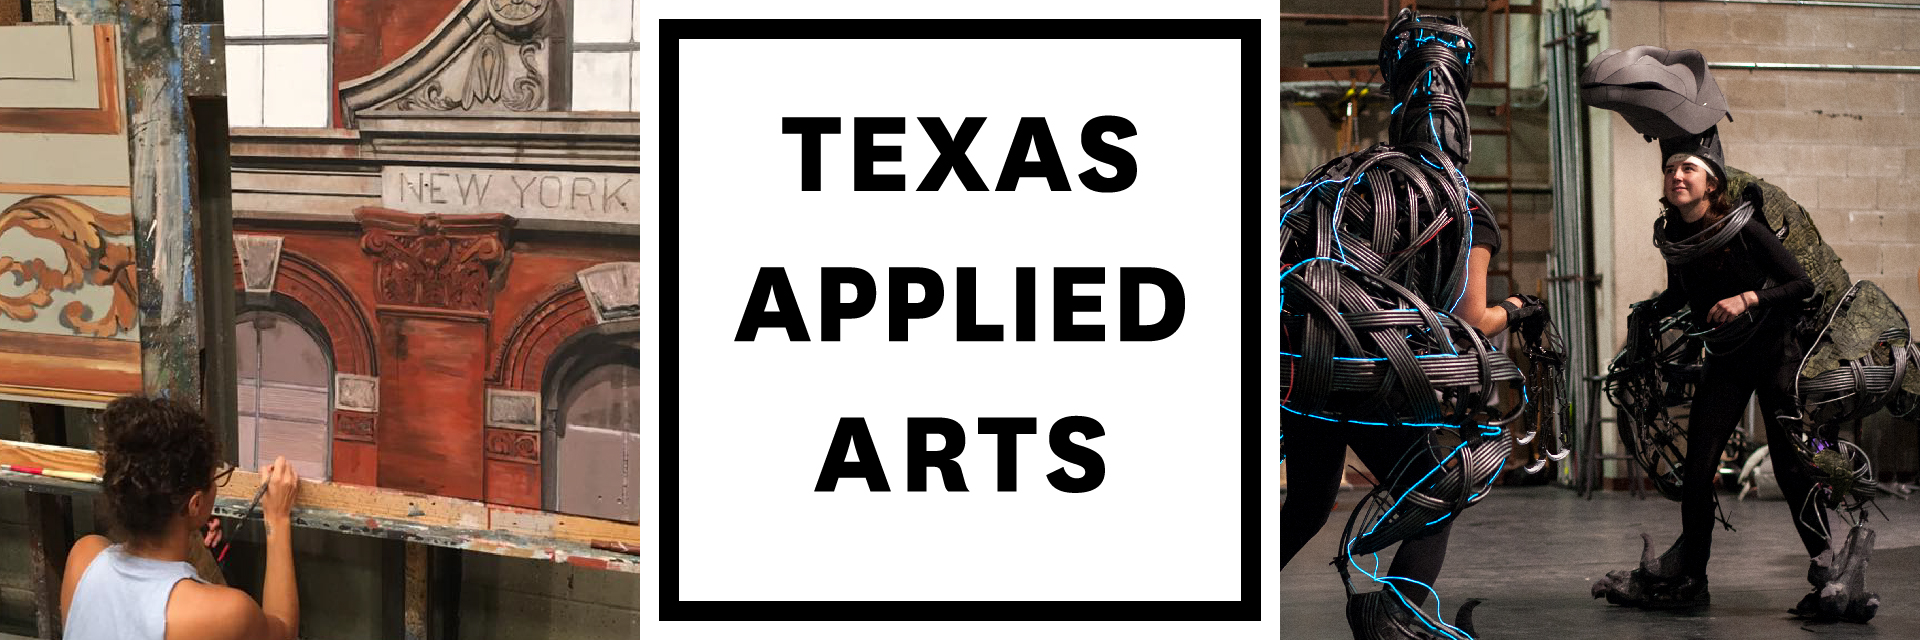 Texas Applied Arts | The University of Texas at Austin